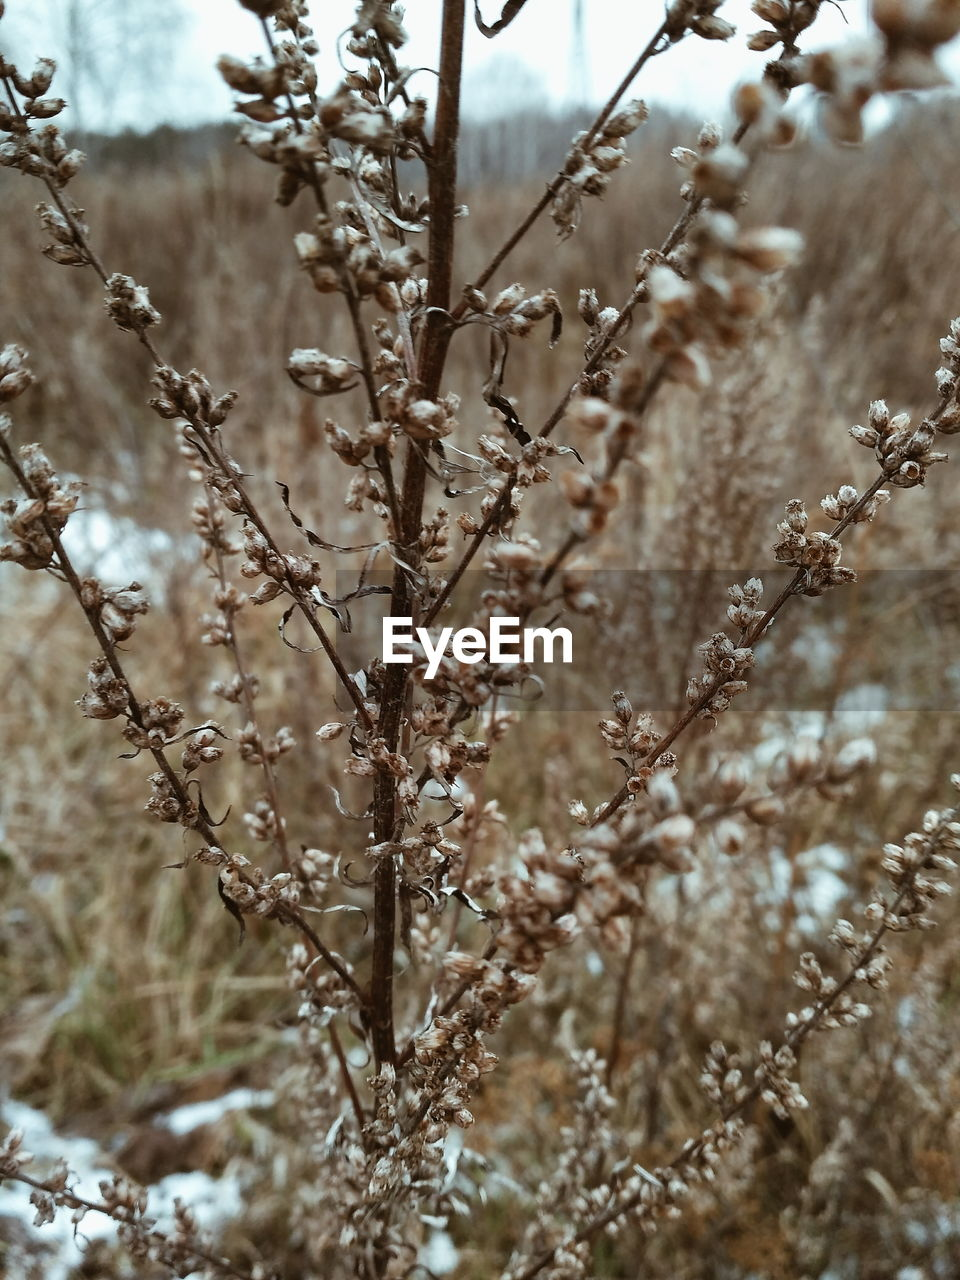 nature, day, no people, winter, plant, outdoors, focus on foreground, beauty in nature, growth, close-up, tranquility, snow, cold temperature, dried plant, branch, tree